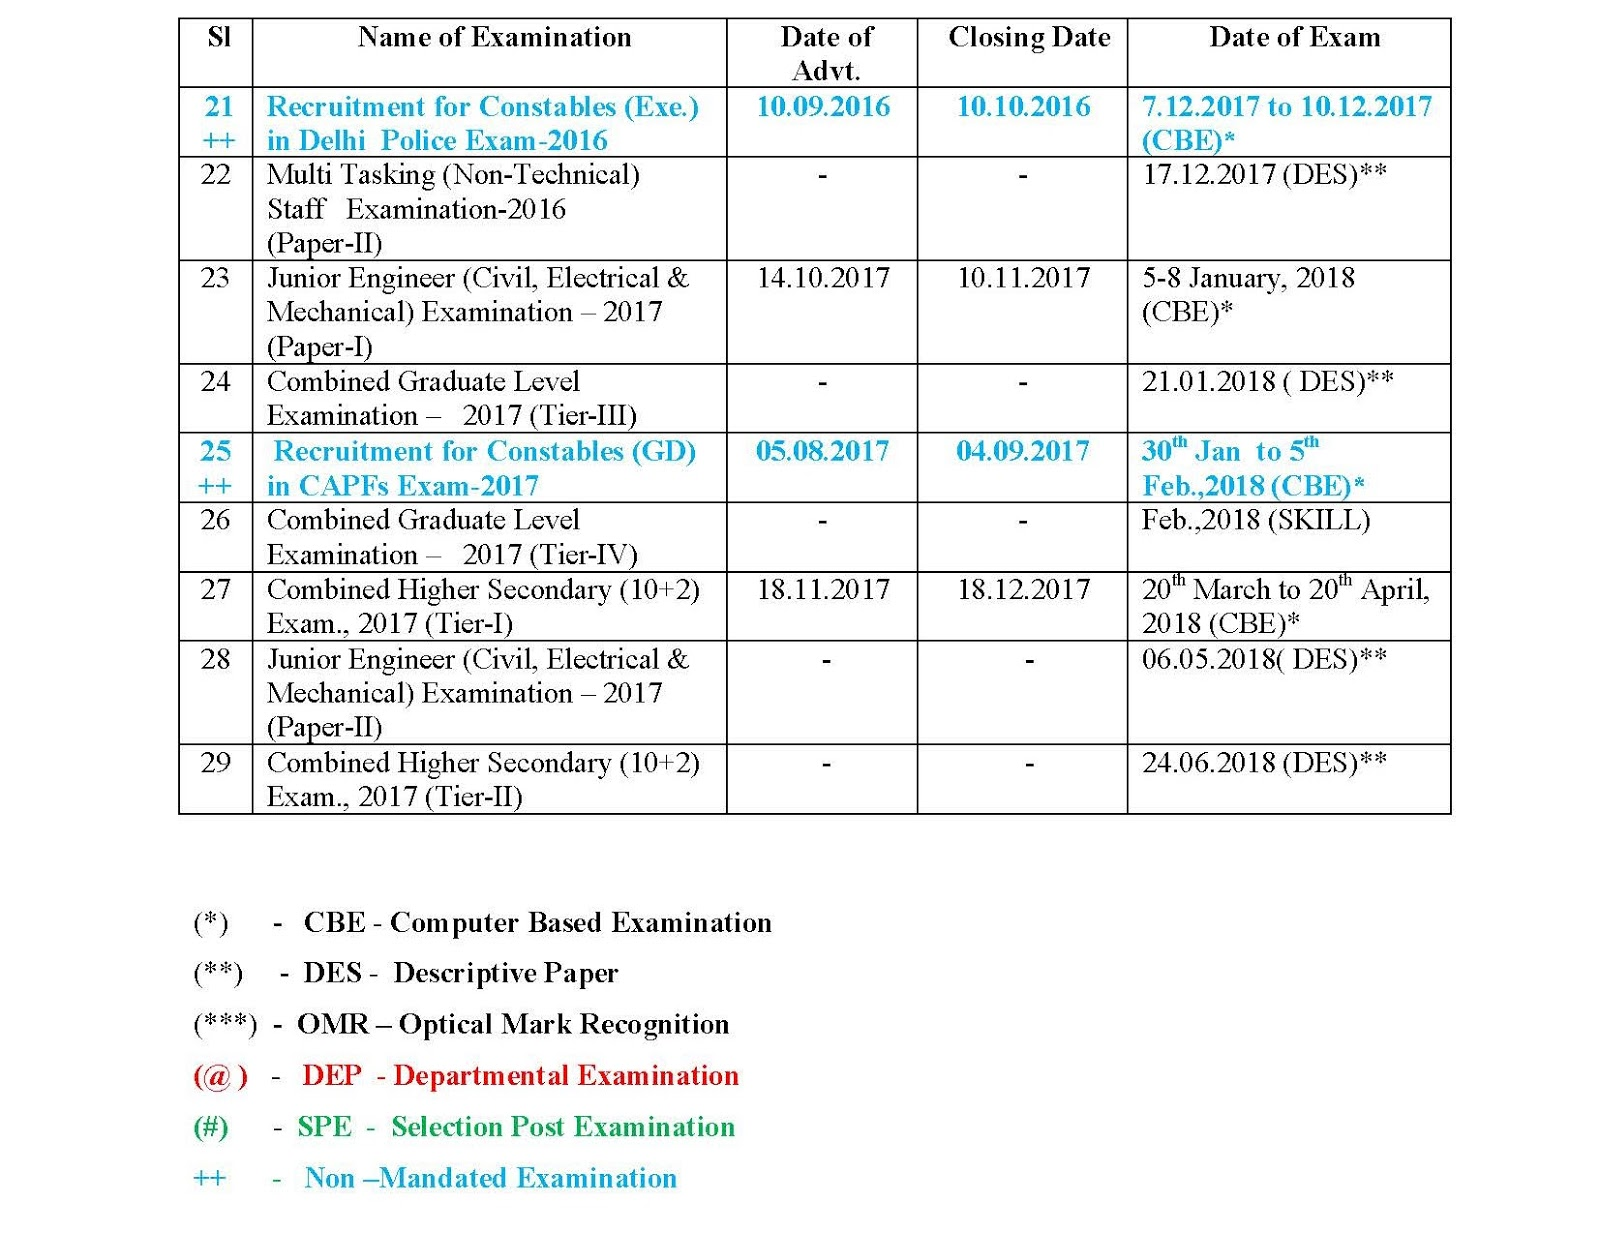 Examination exam schedule in 2017 19